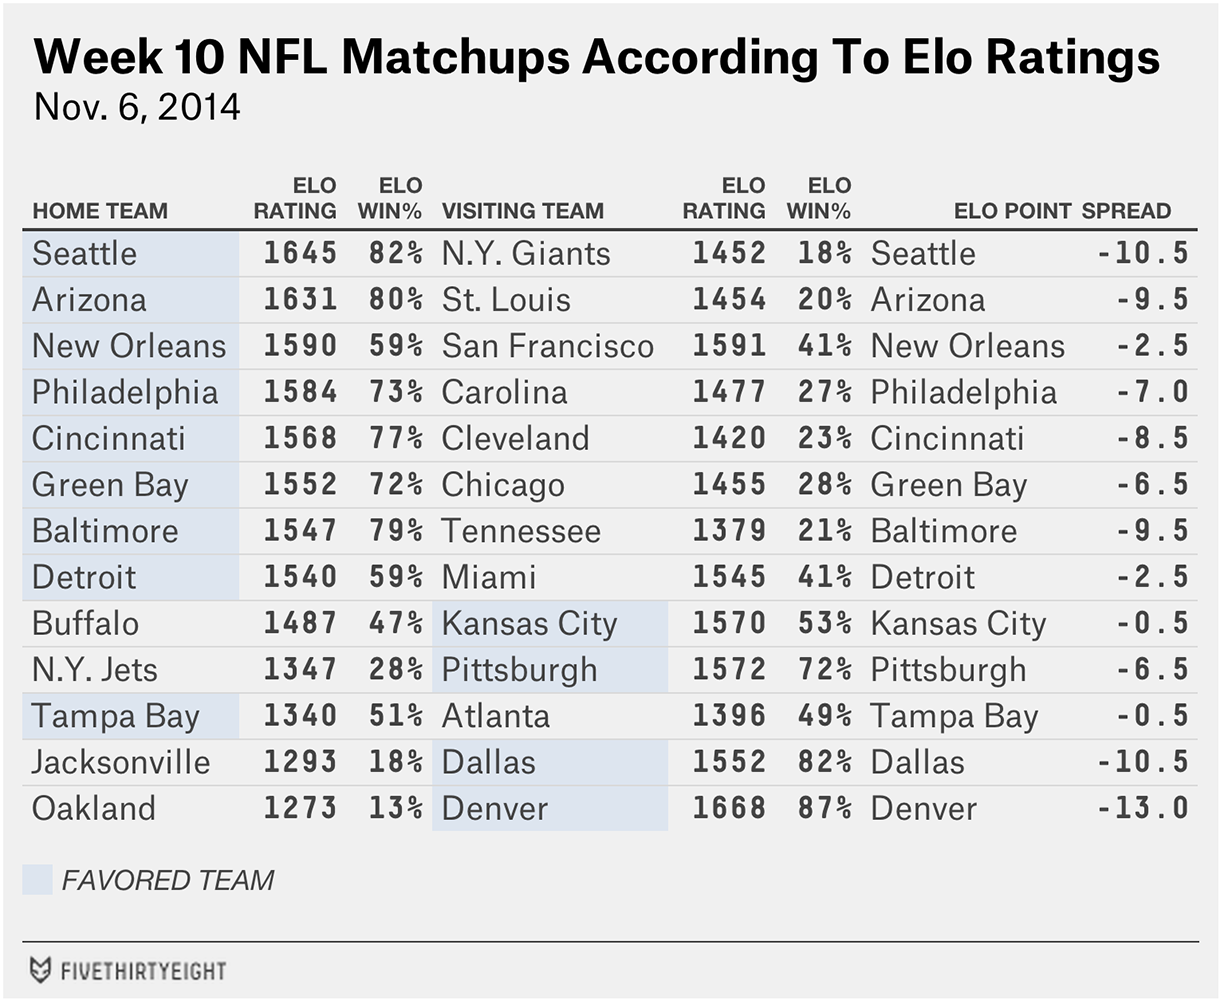 nfl-eloratings-week10-table3-fix